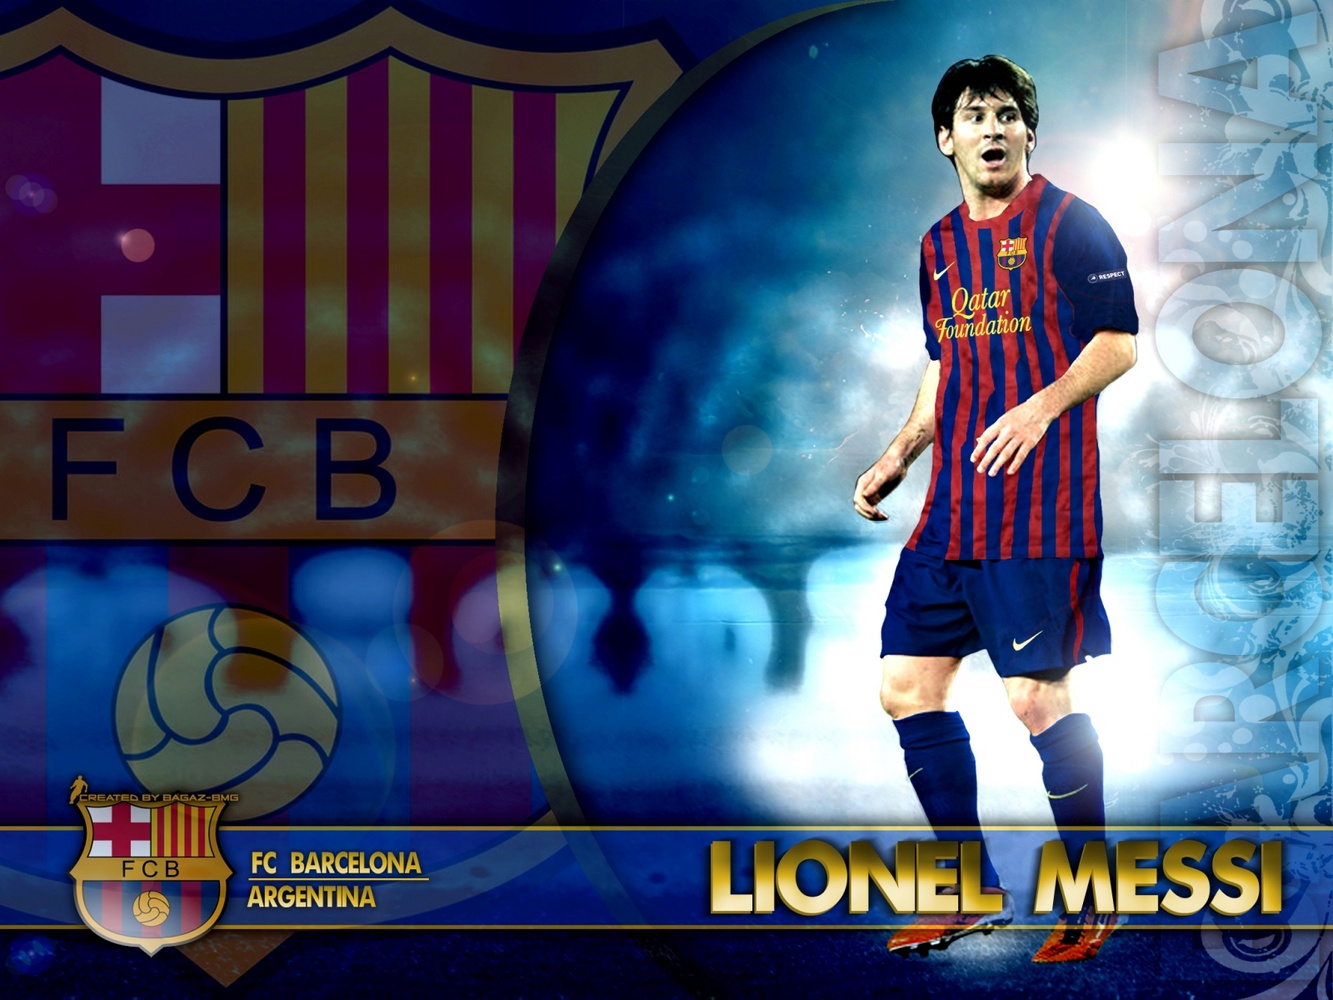 Football Wallpapers Lionel Messi New Wallpapers picture wallpaper image